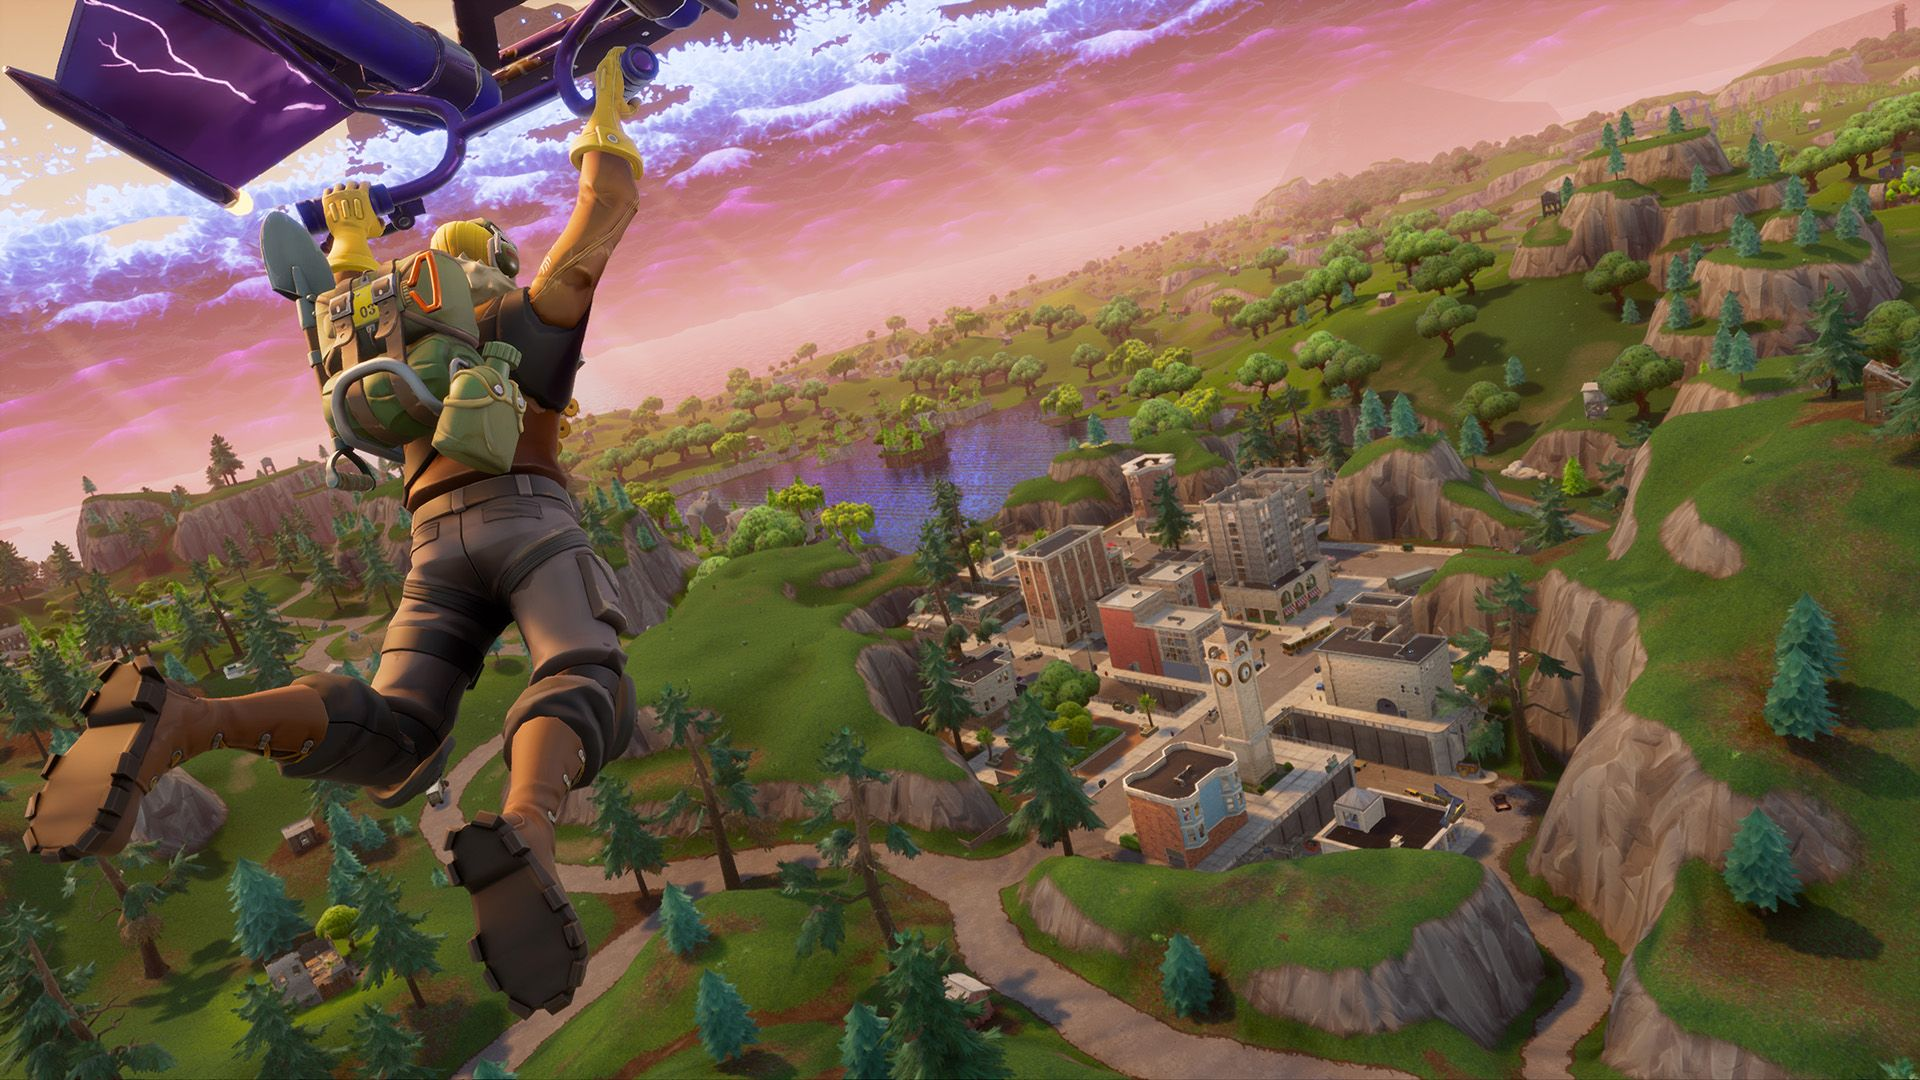 Fortnite Leak Suggests Tilted Towers May Finally Get Destroyed In